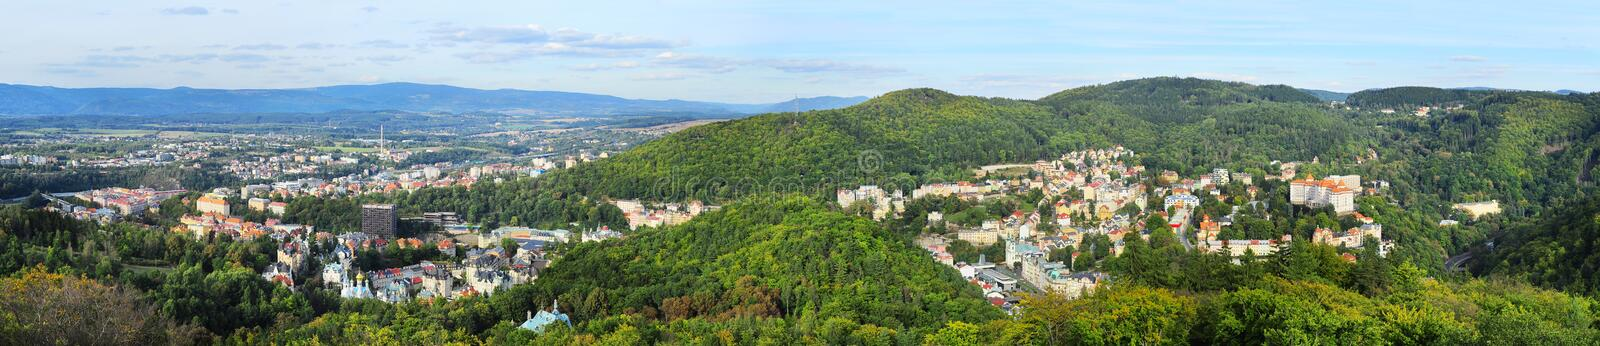 Download Karlovy Vary stock photo. Image of europe, outdoors, architecture - 27518226